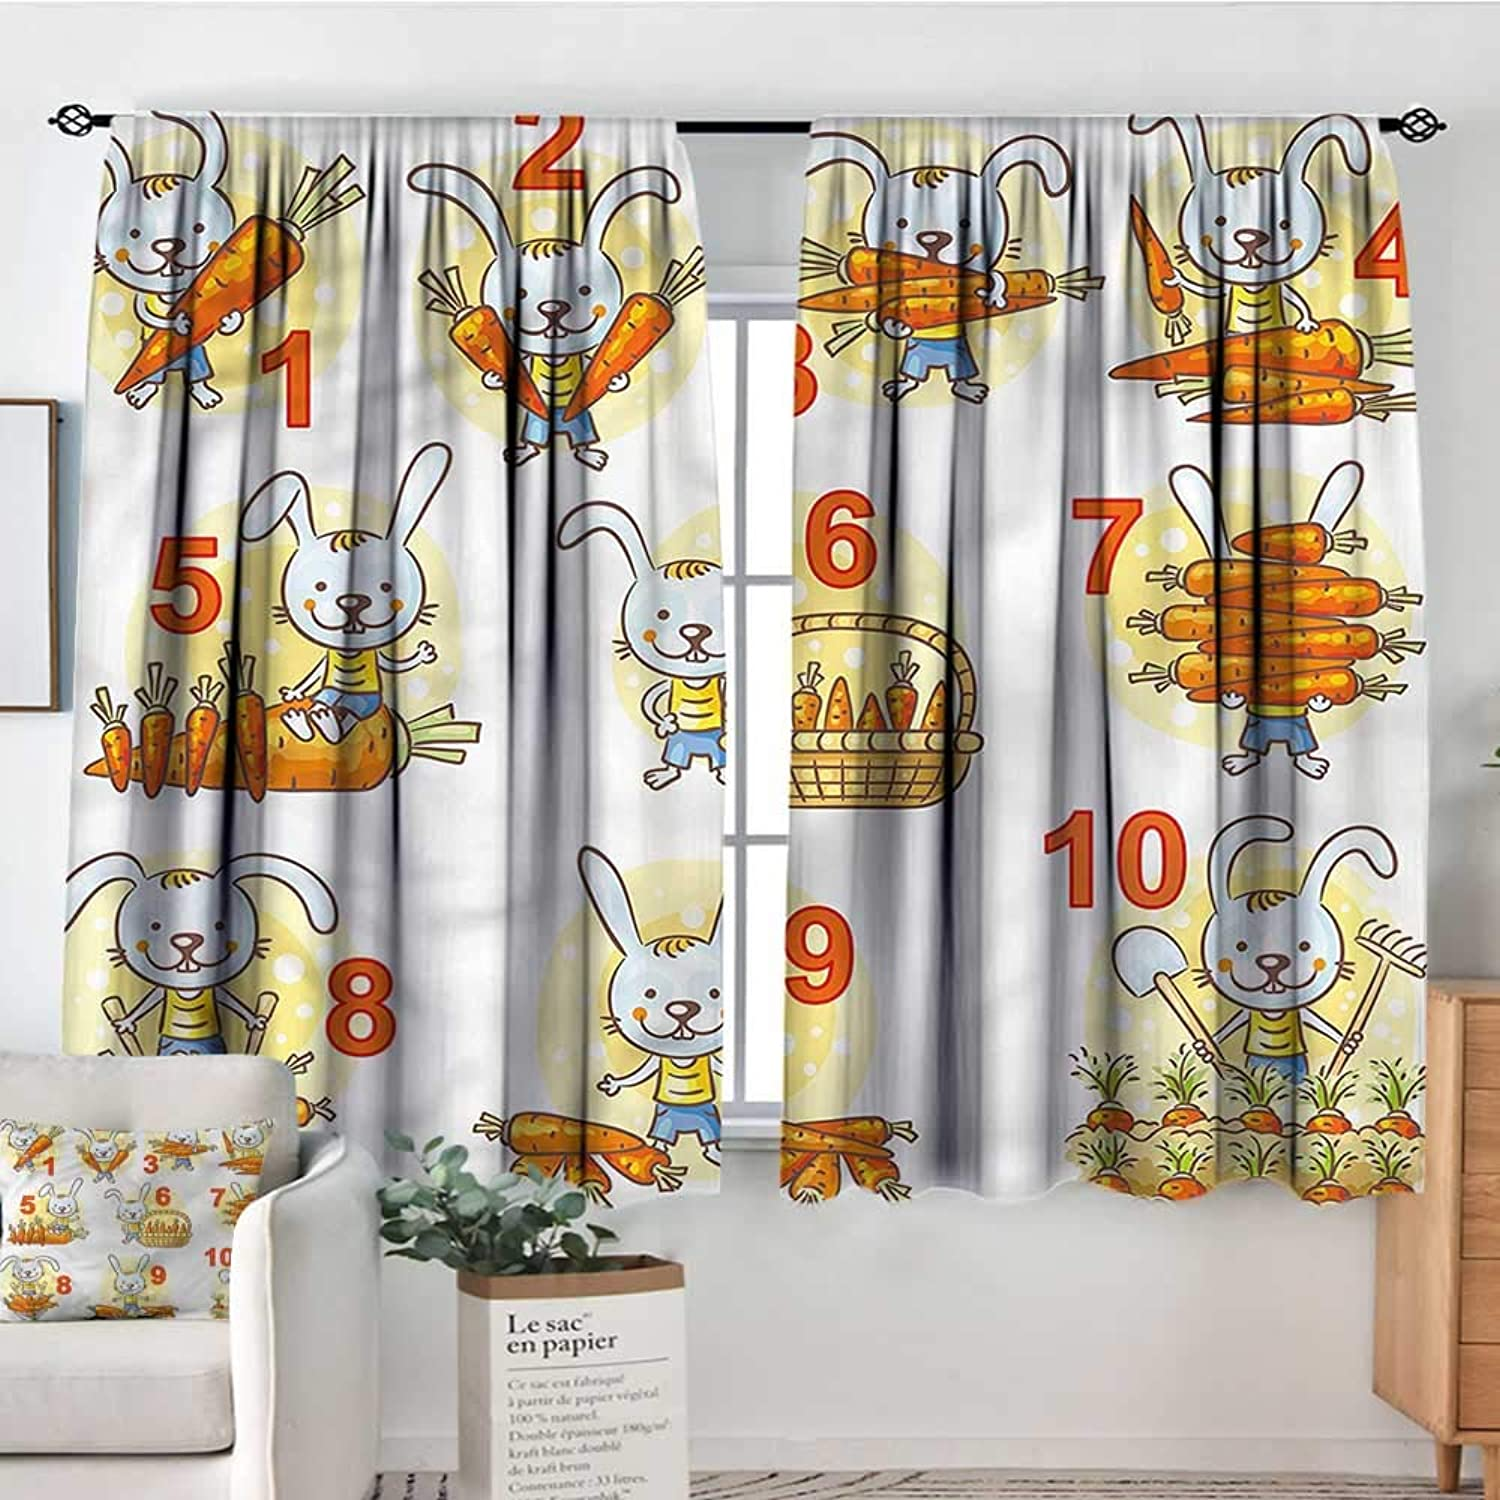 Sanring Mathematics Classroom,Modern Kids Curtain Rabbit Carred 42 X63  Decorative Curtains for Iving Room